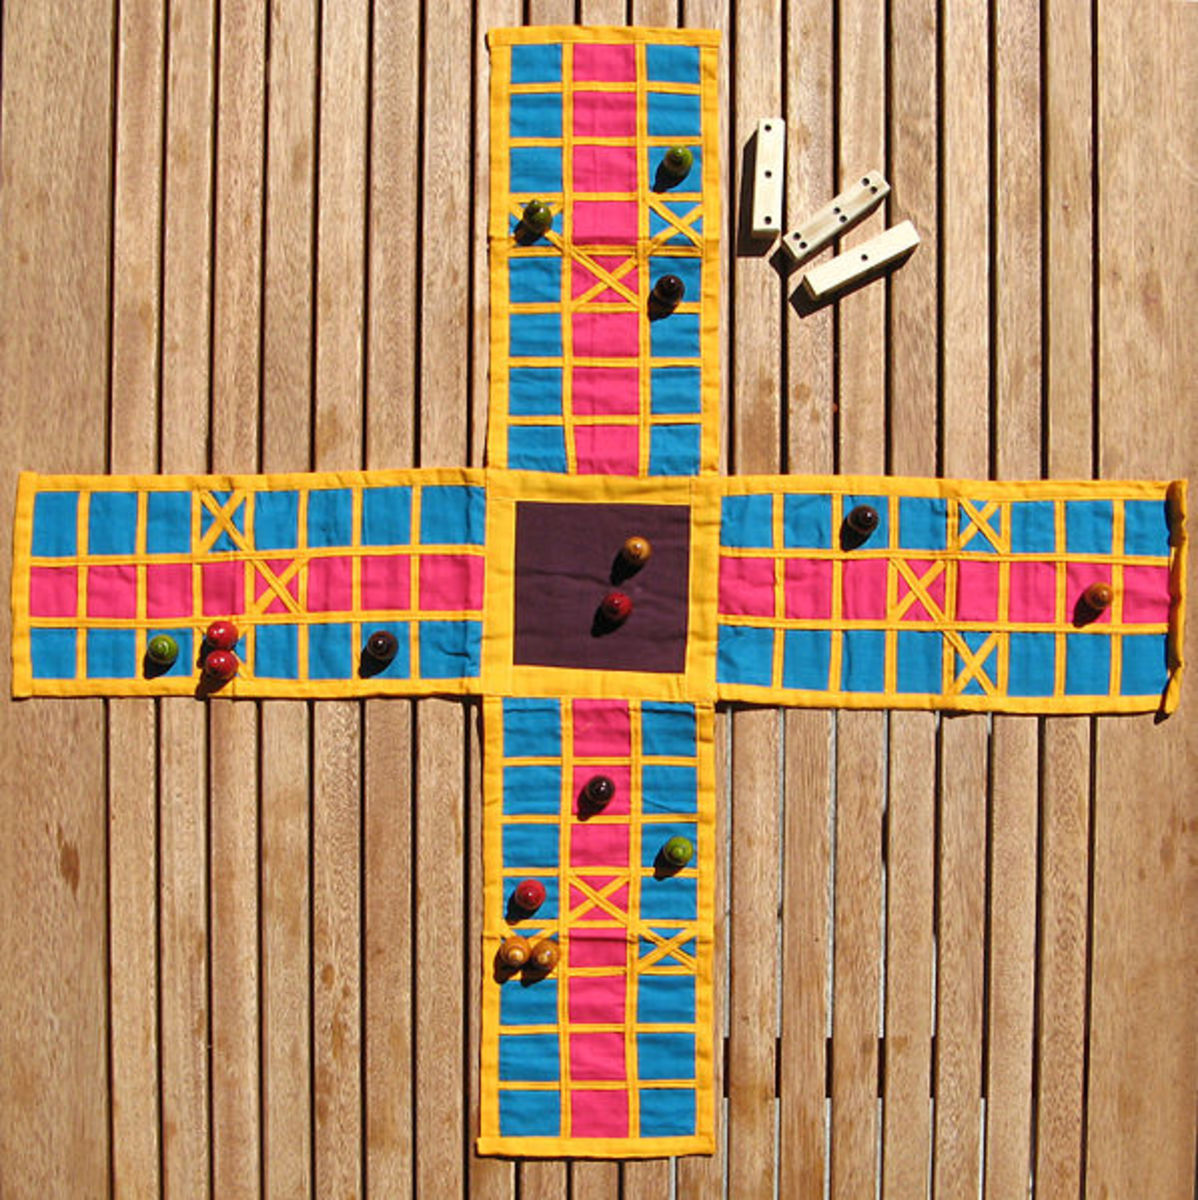 Pachisi Board (courtesy of wiki.org)